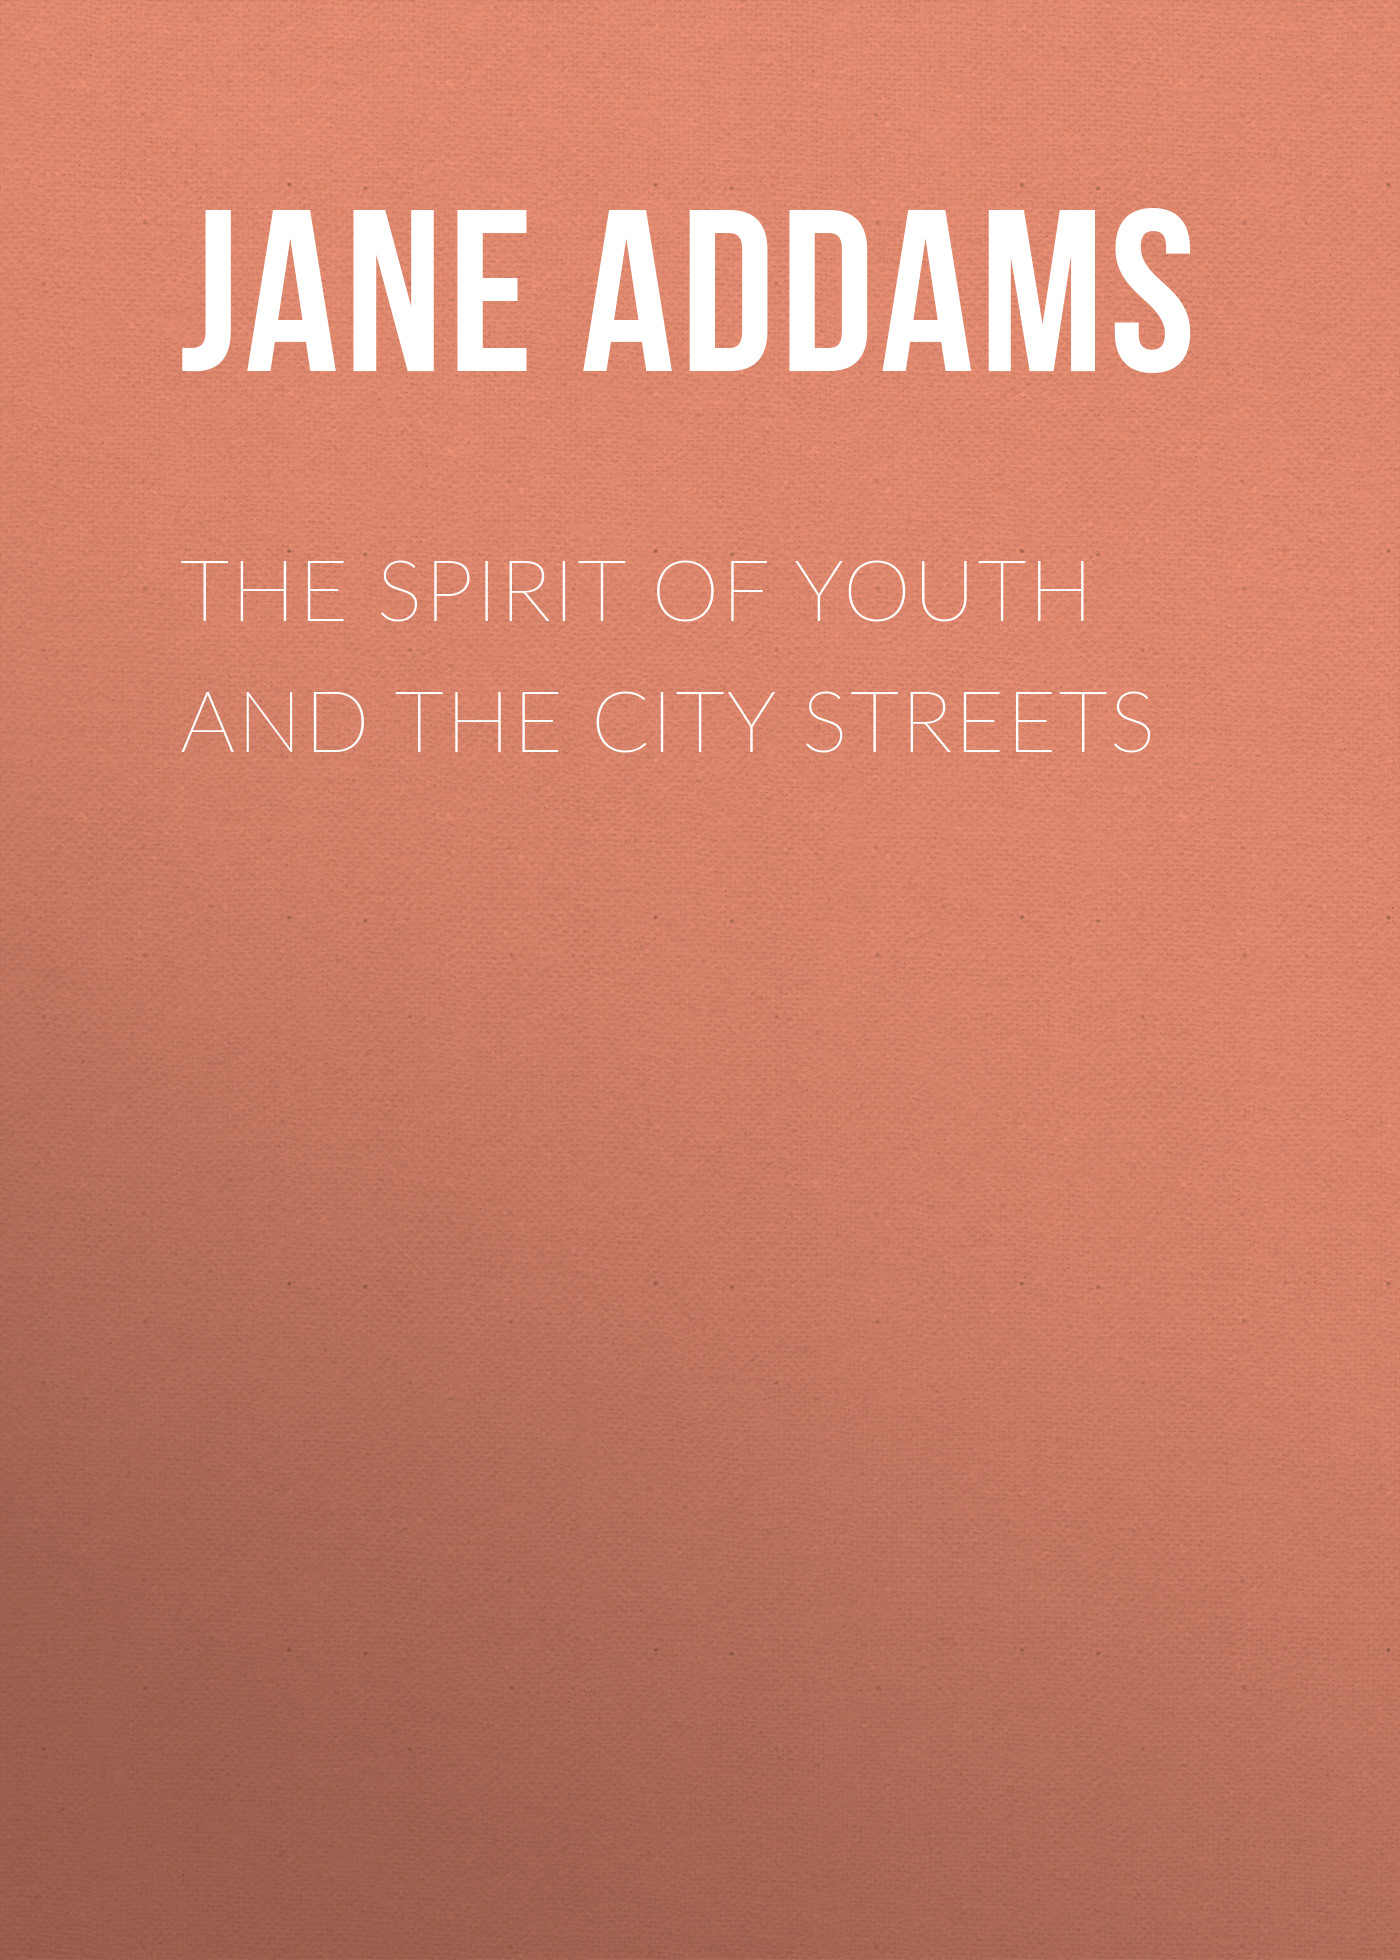 Jane Addams The Spirit of Youth and the City Streets